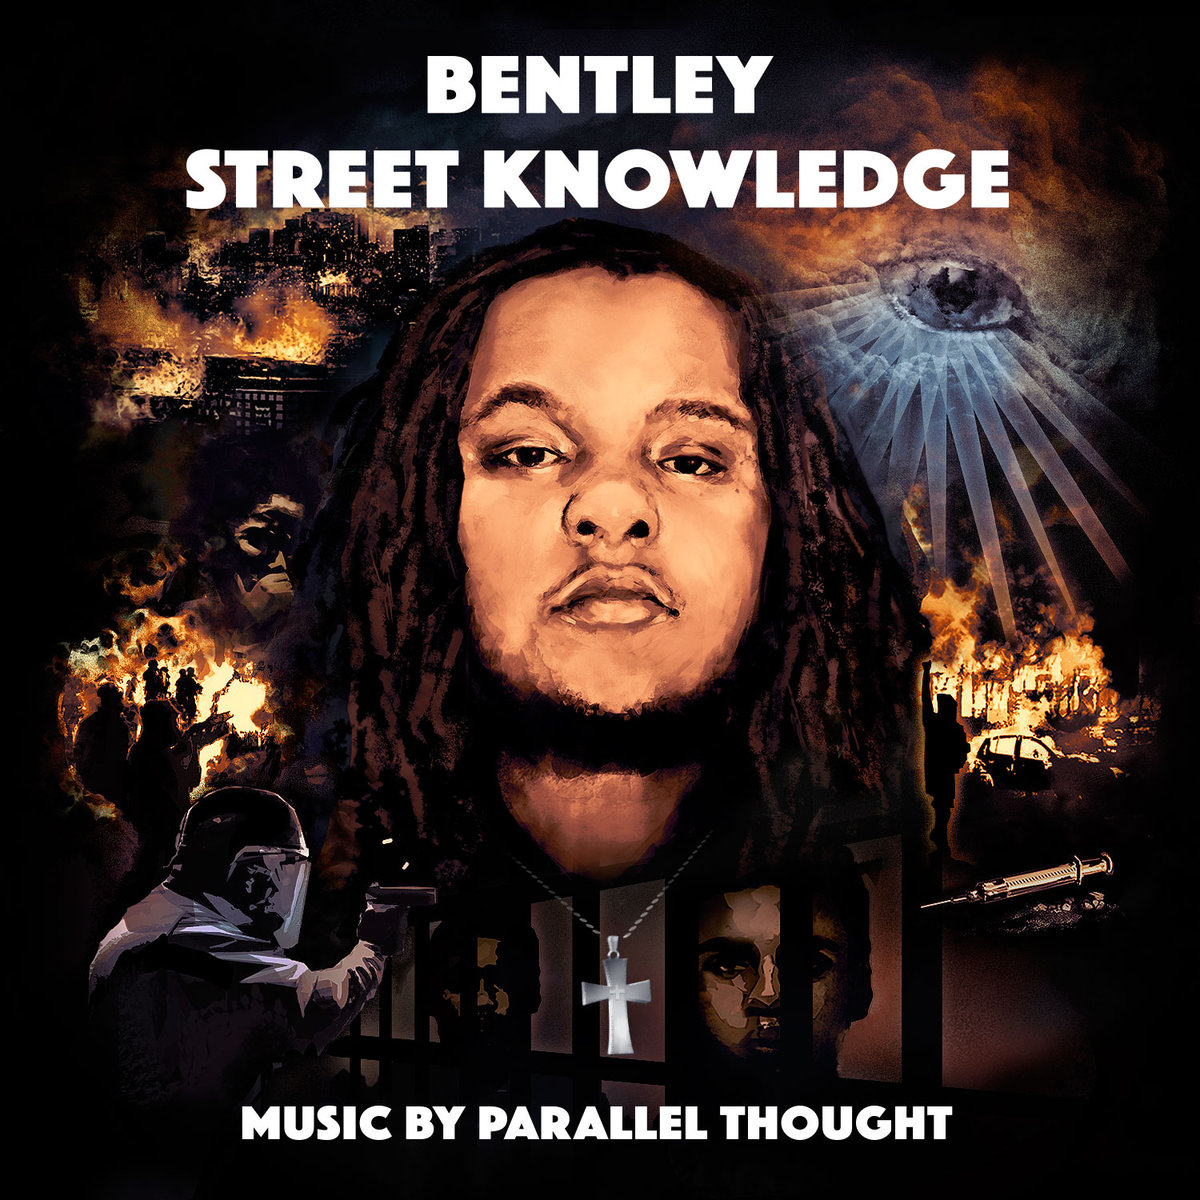 bently street knowledge